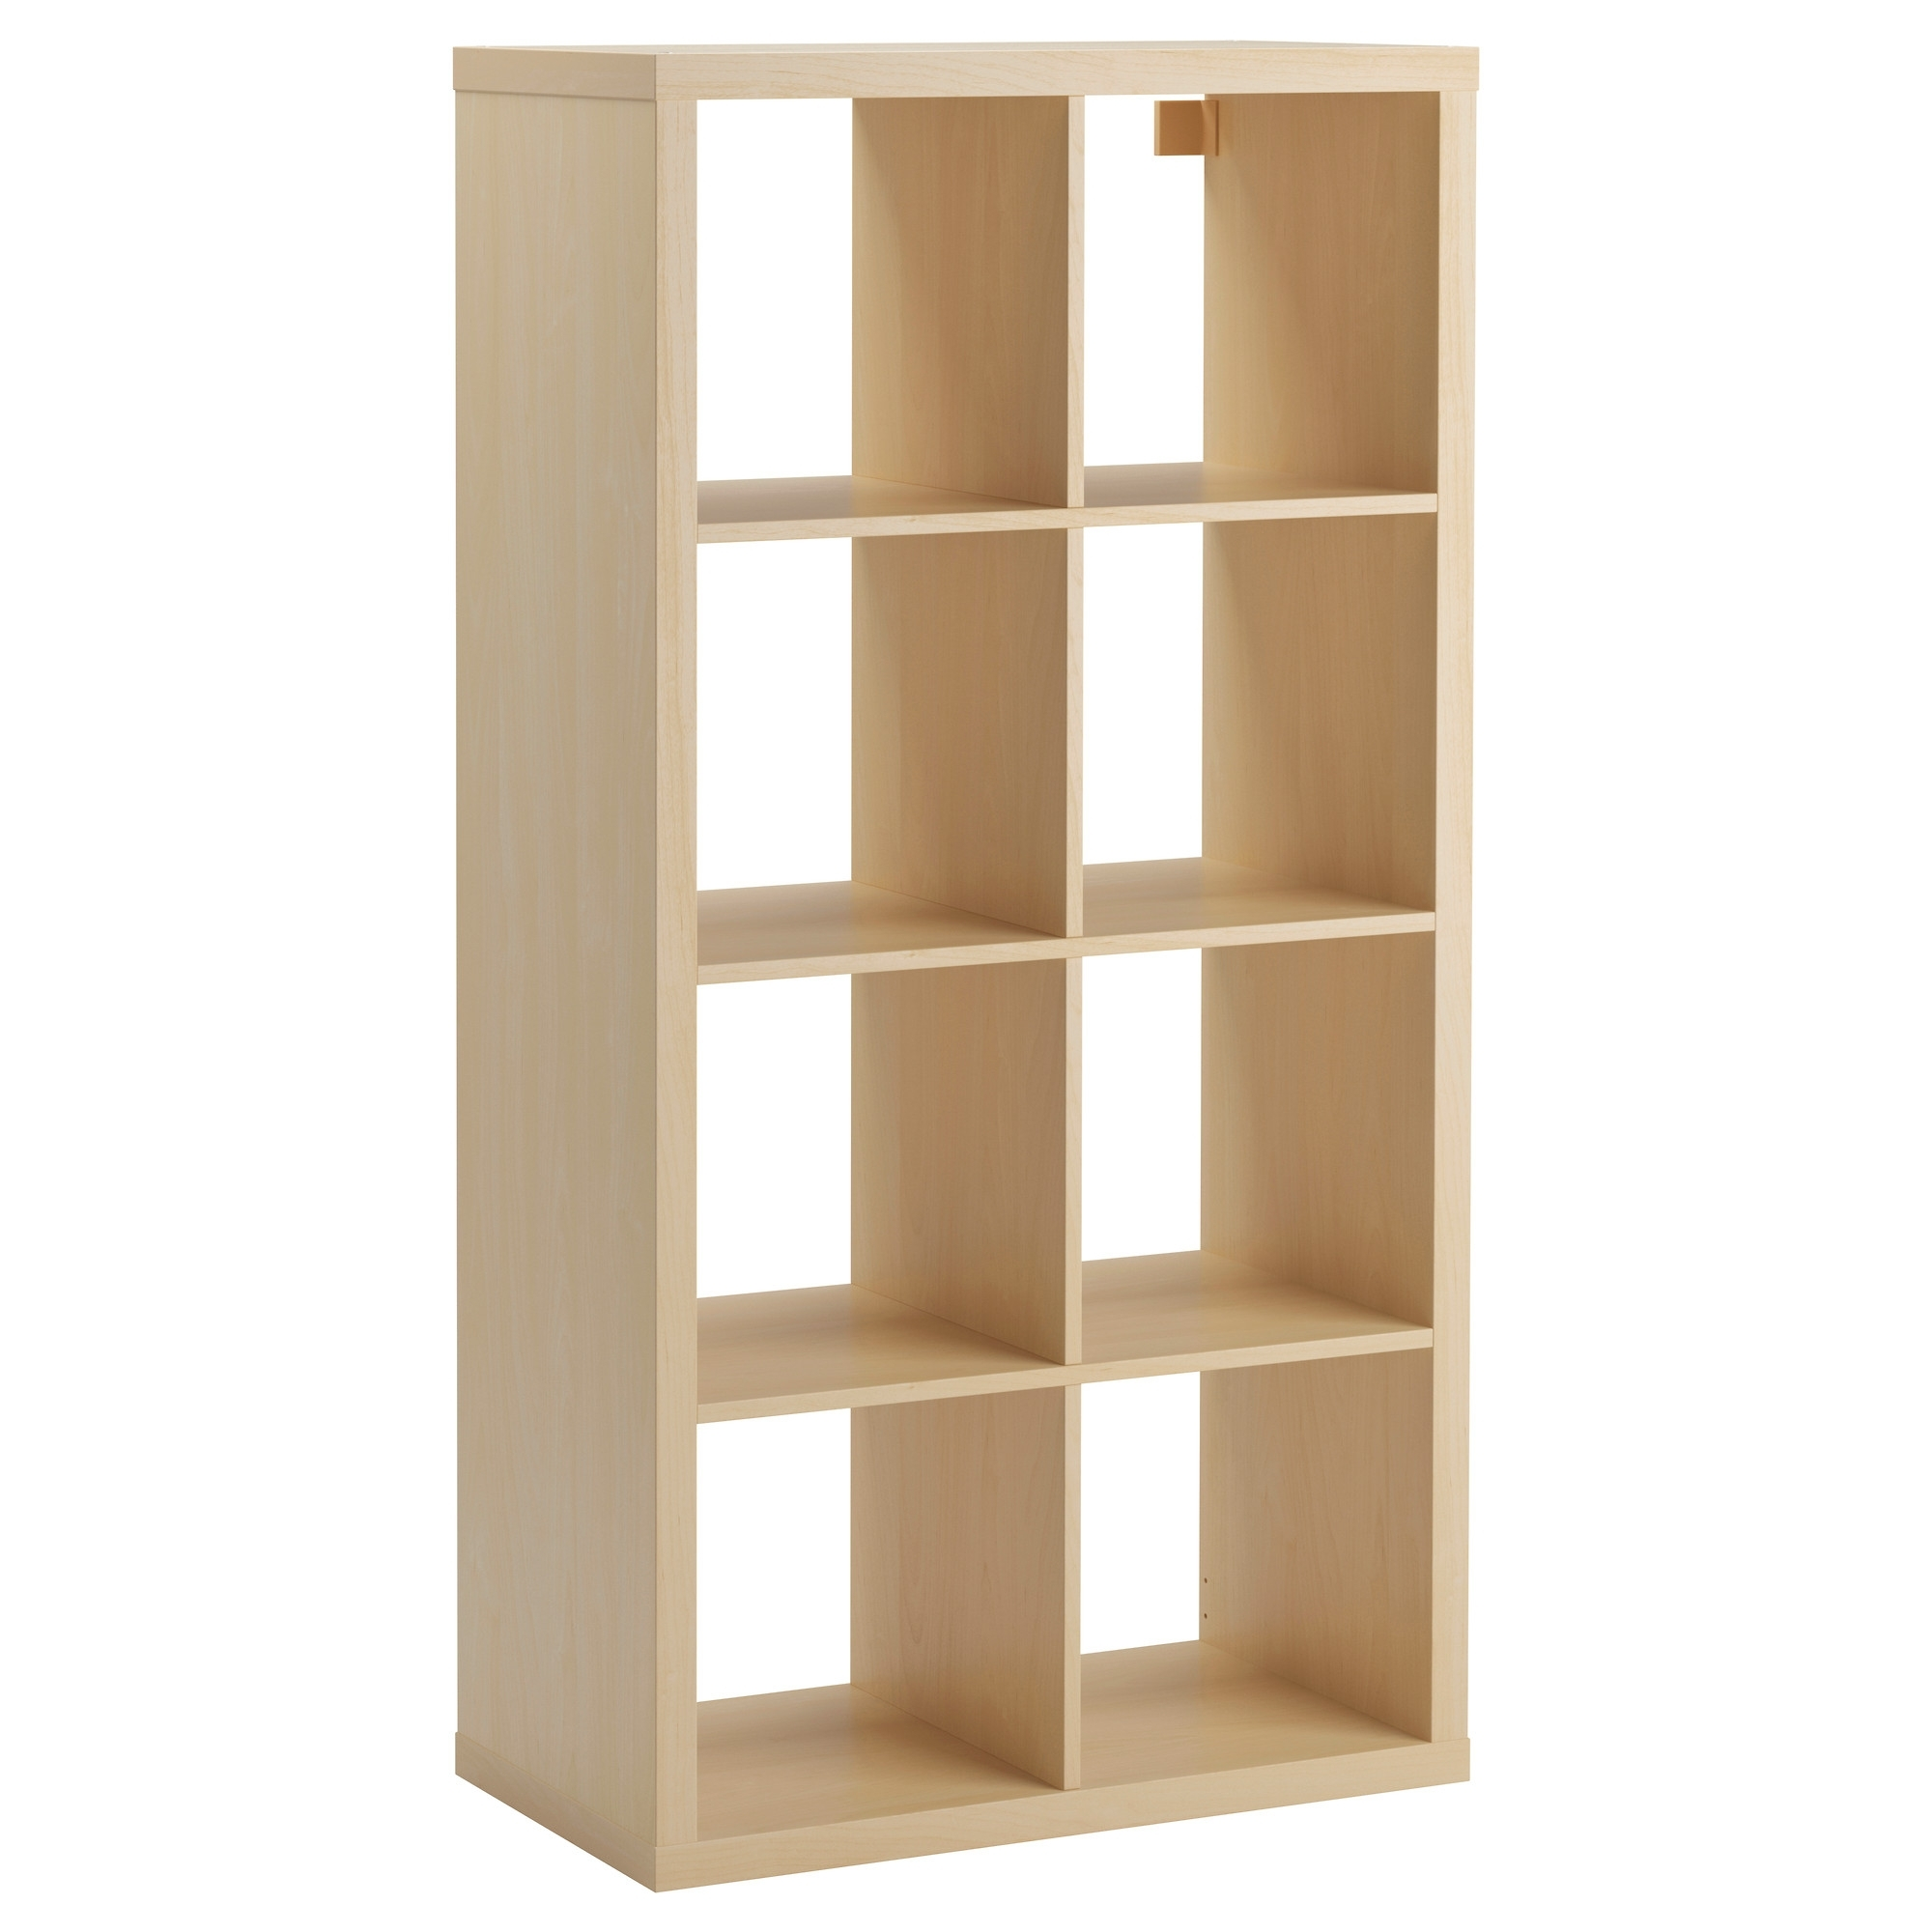 Ikea Expedit Bookcases Pertaining To Current Kallax Shelf Unit – Birch Effect – Ikea (Gallery 3 of 15)